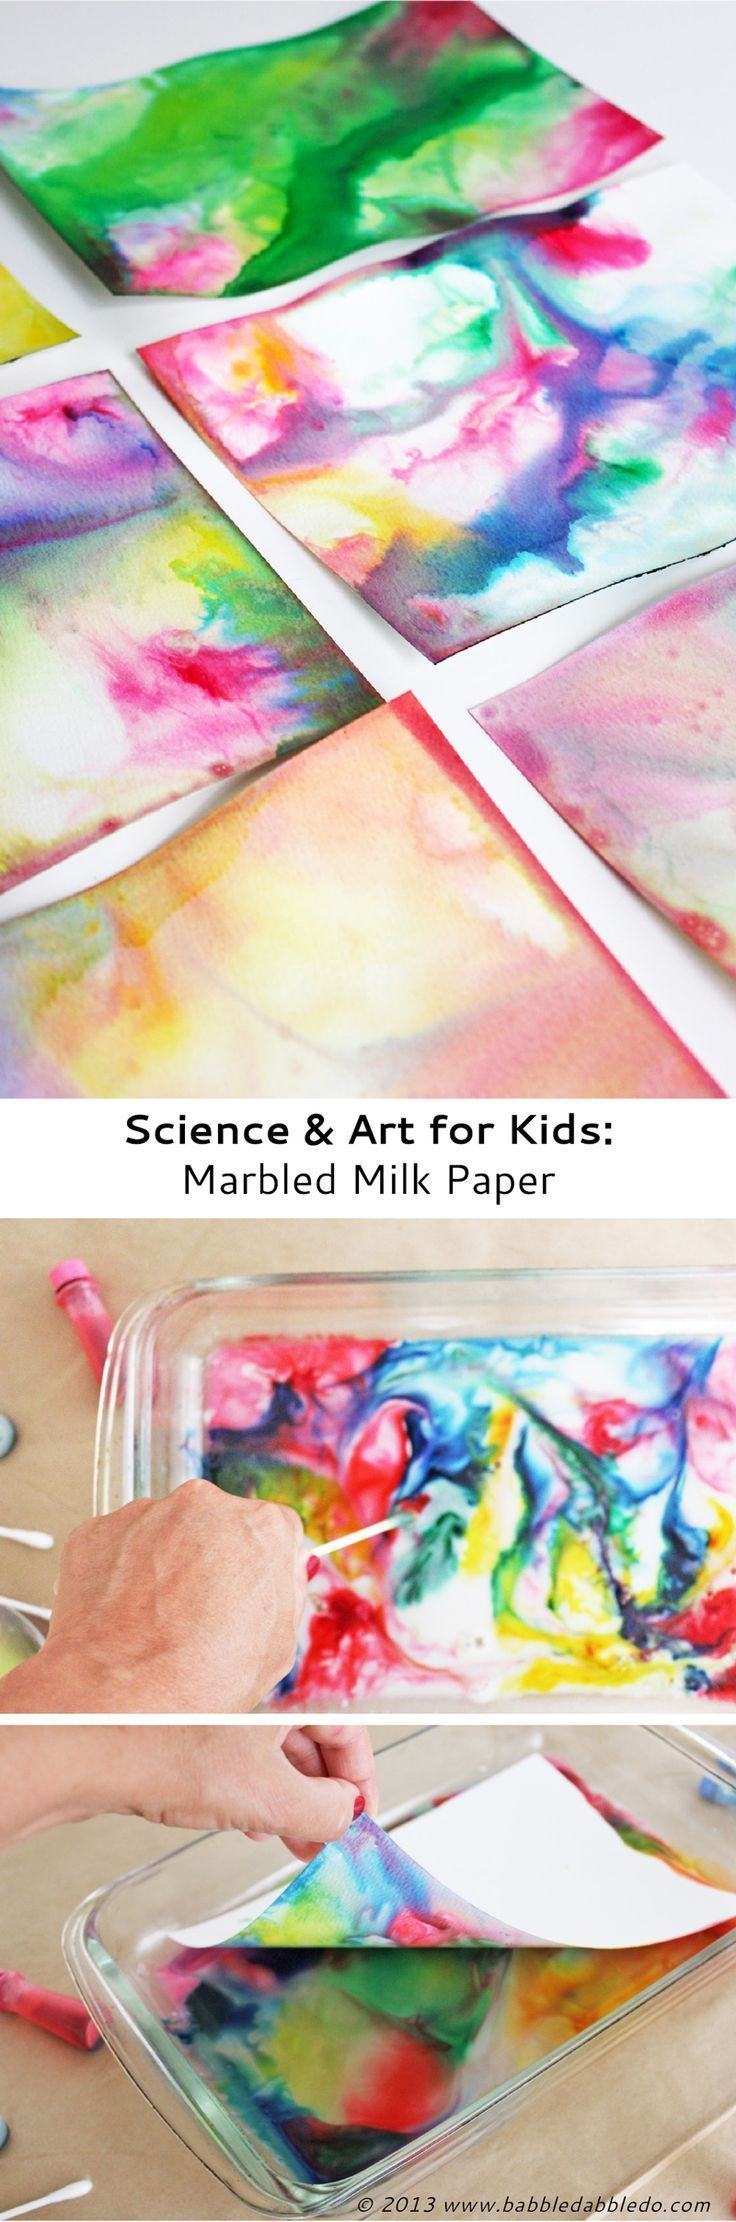 Did You Know Can Marble Paper With Milk